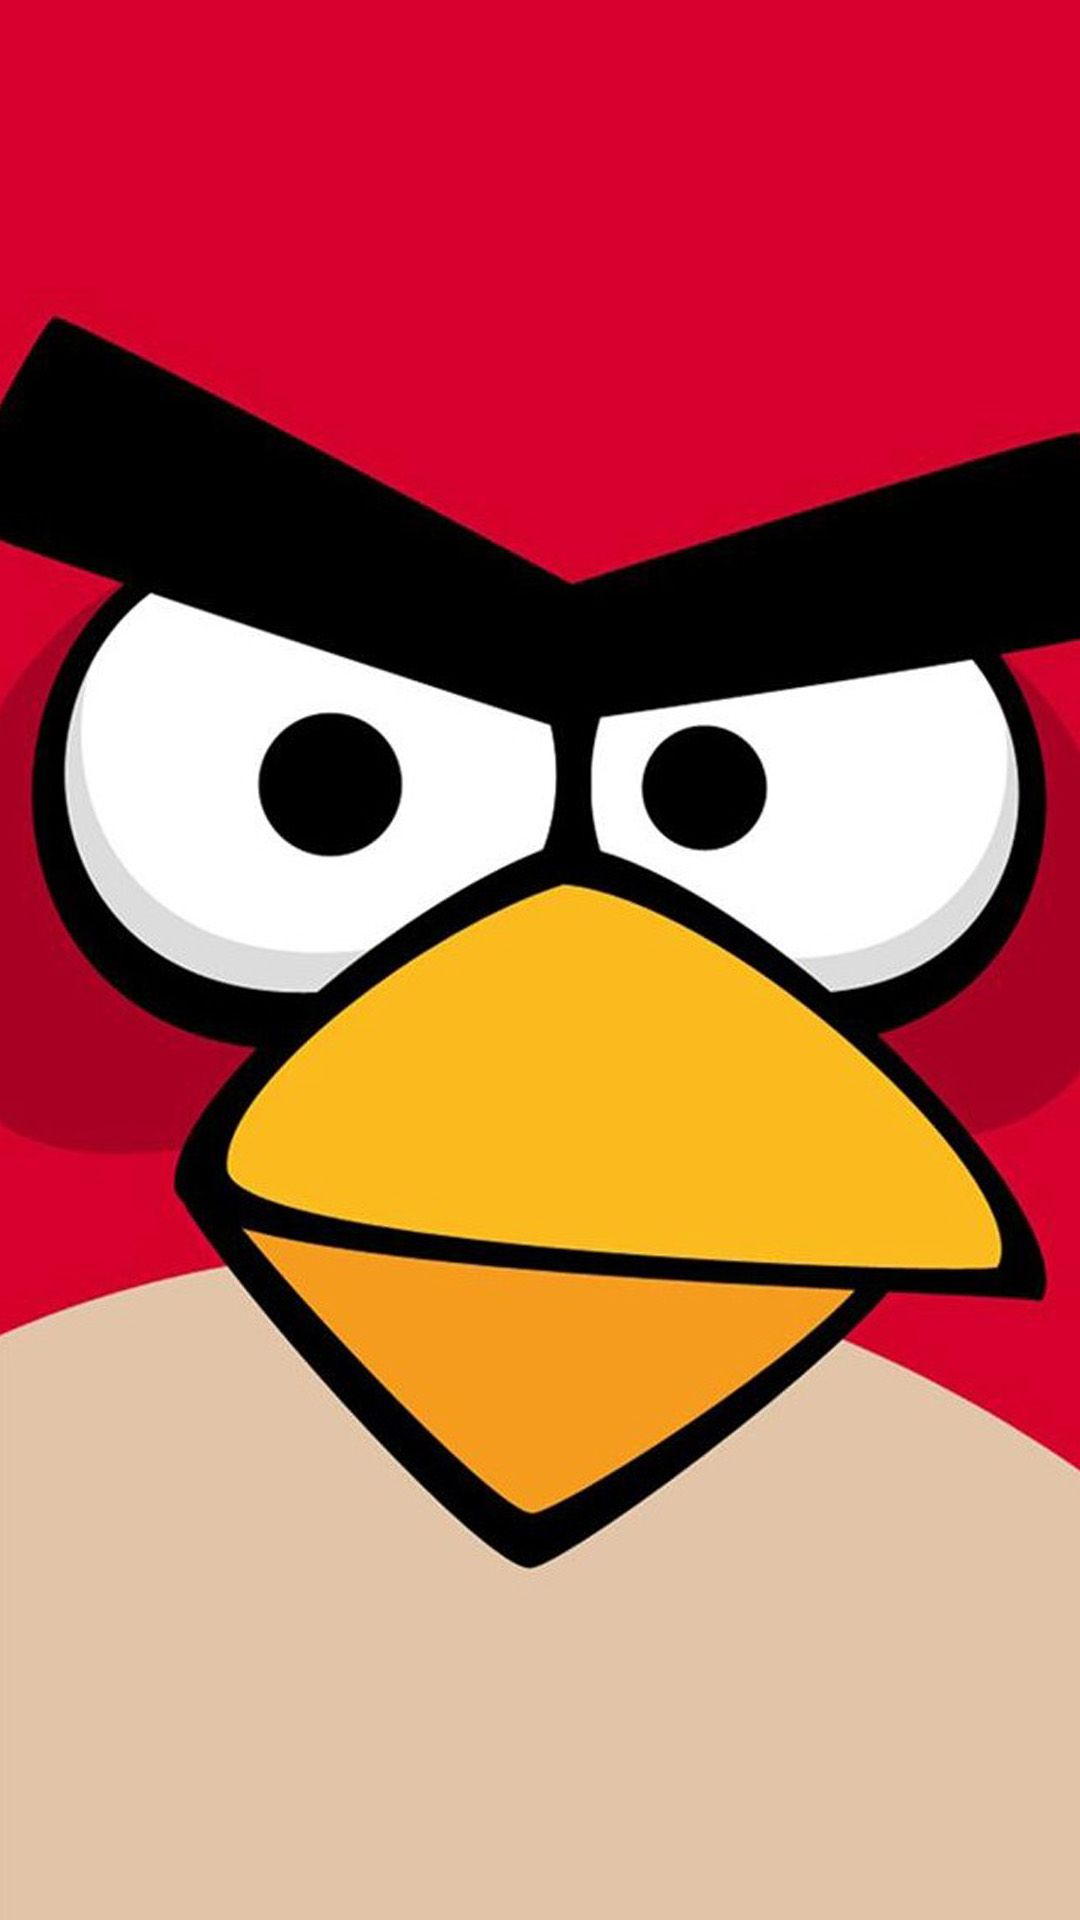 Angry Bird Game Background Iphone 6 Plus Wallpaper Iphone